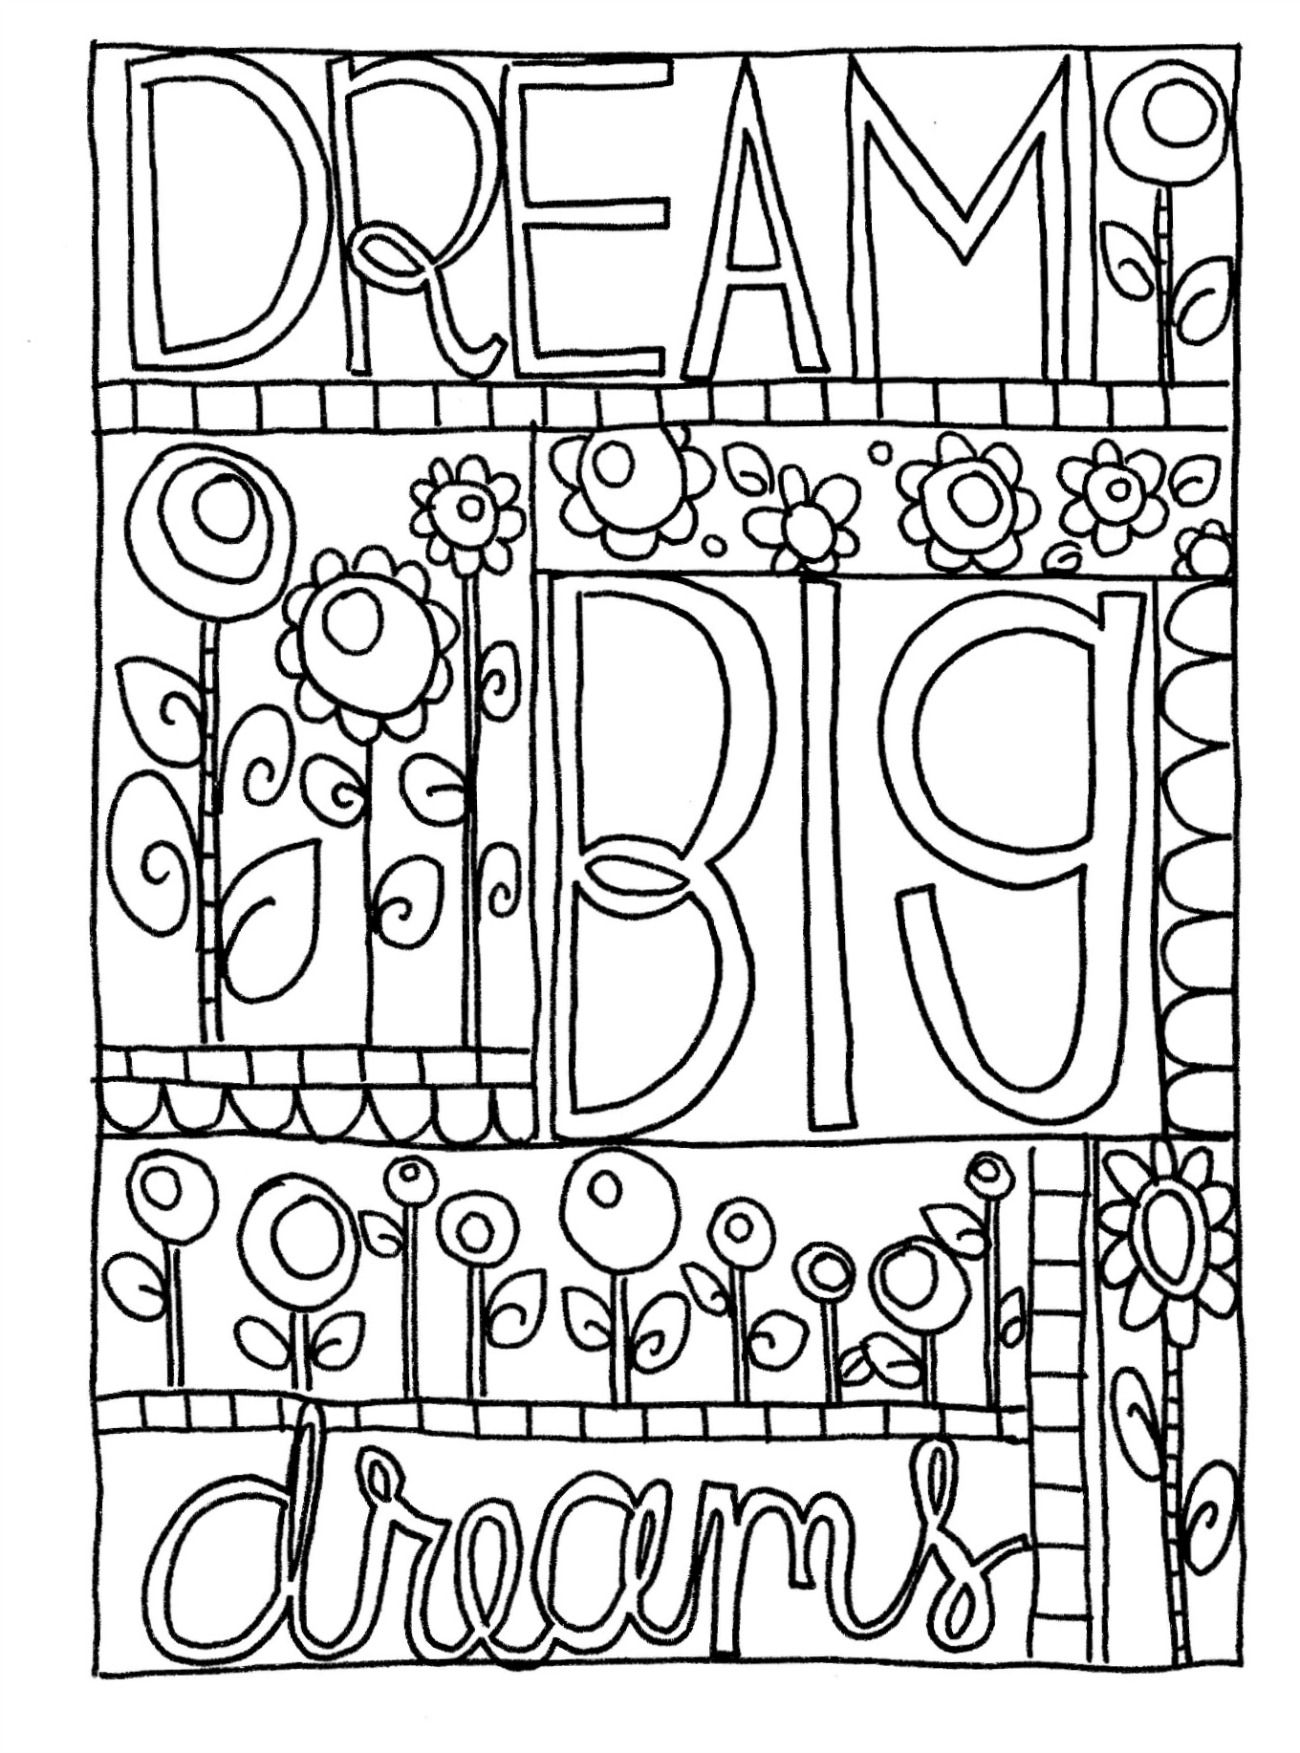 doodle pages doodle coloring pages best coloring pages for kids doodle pages